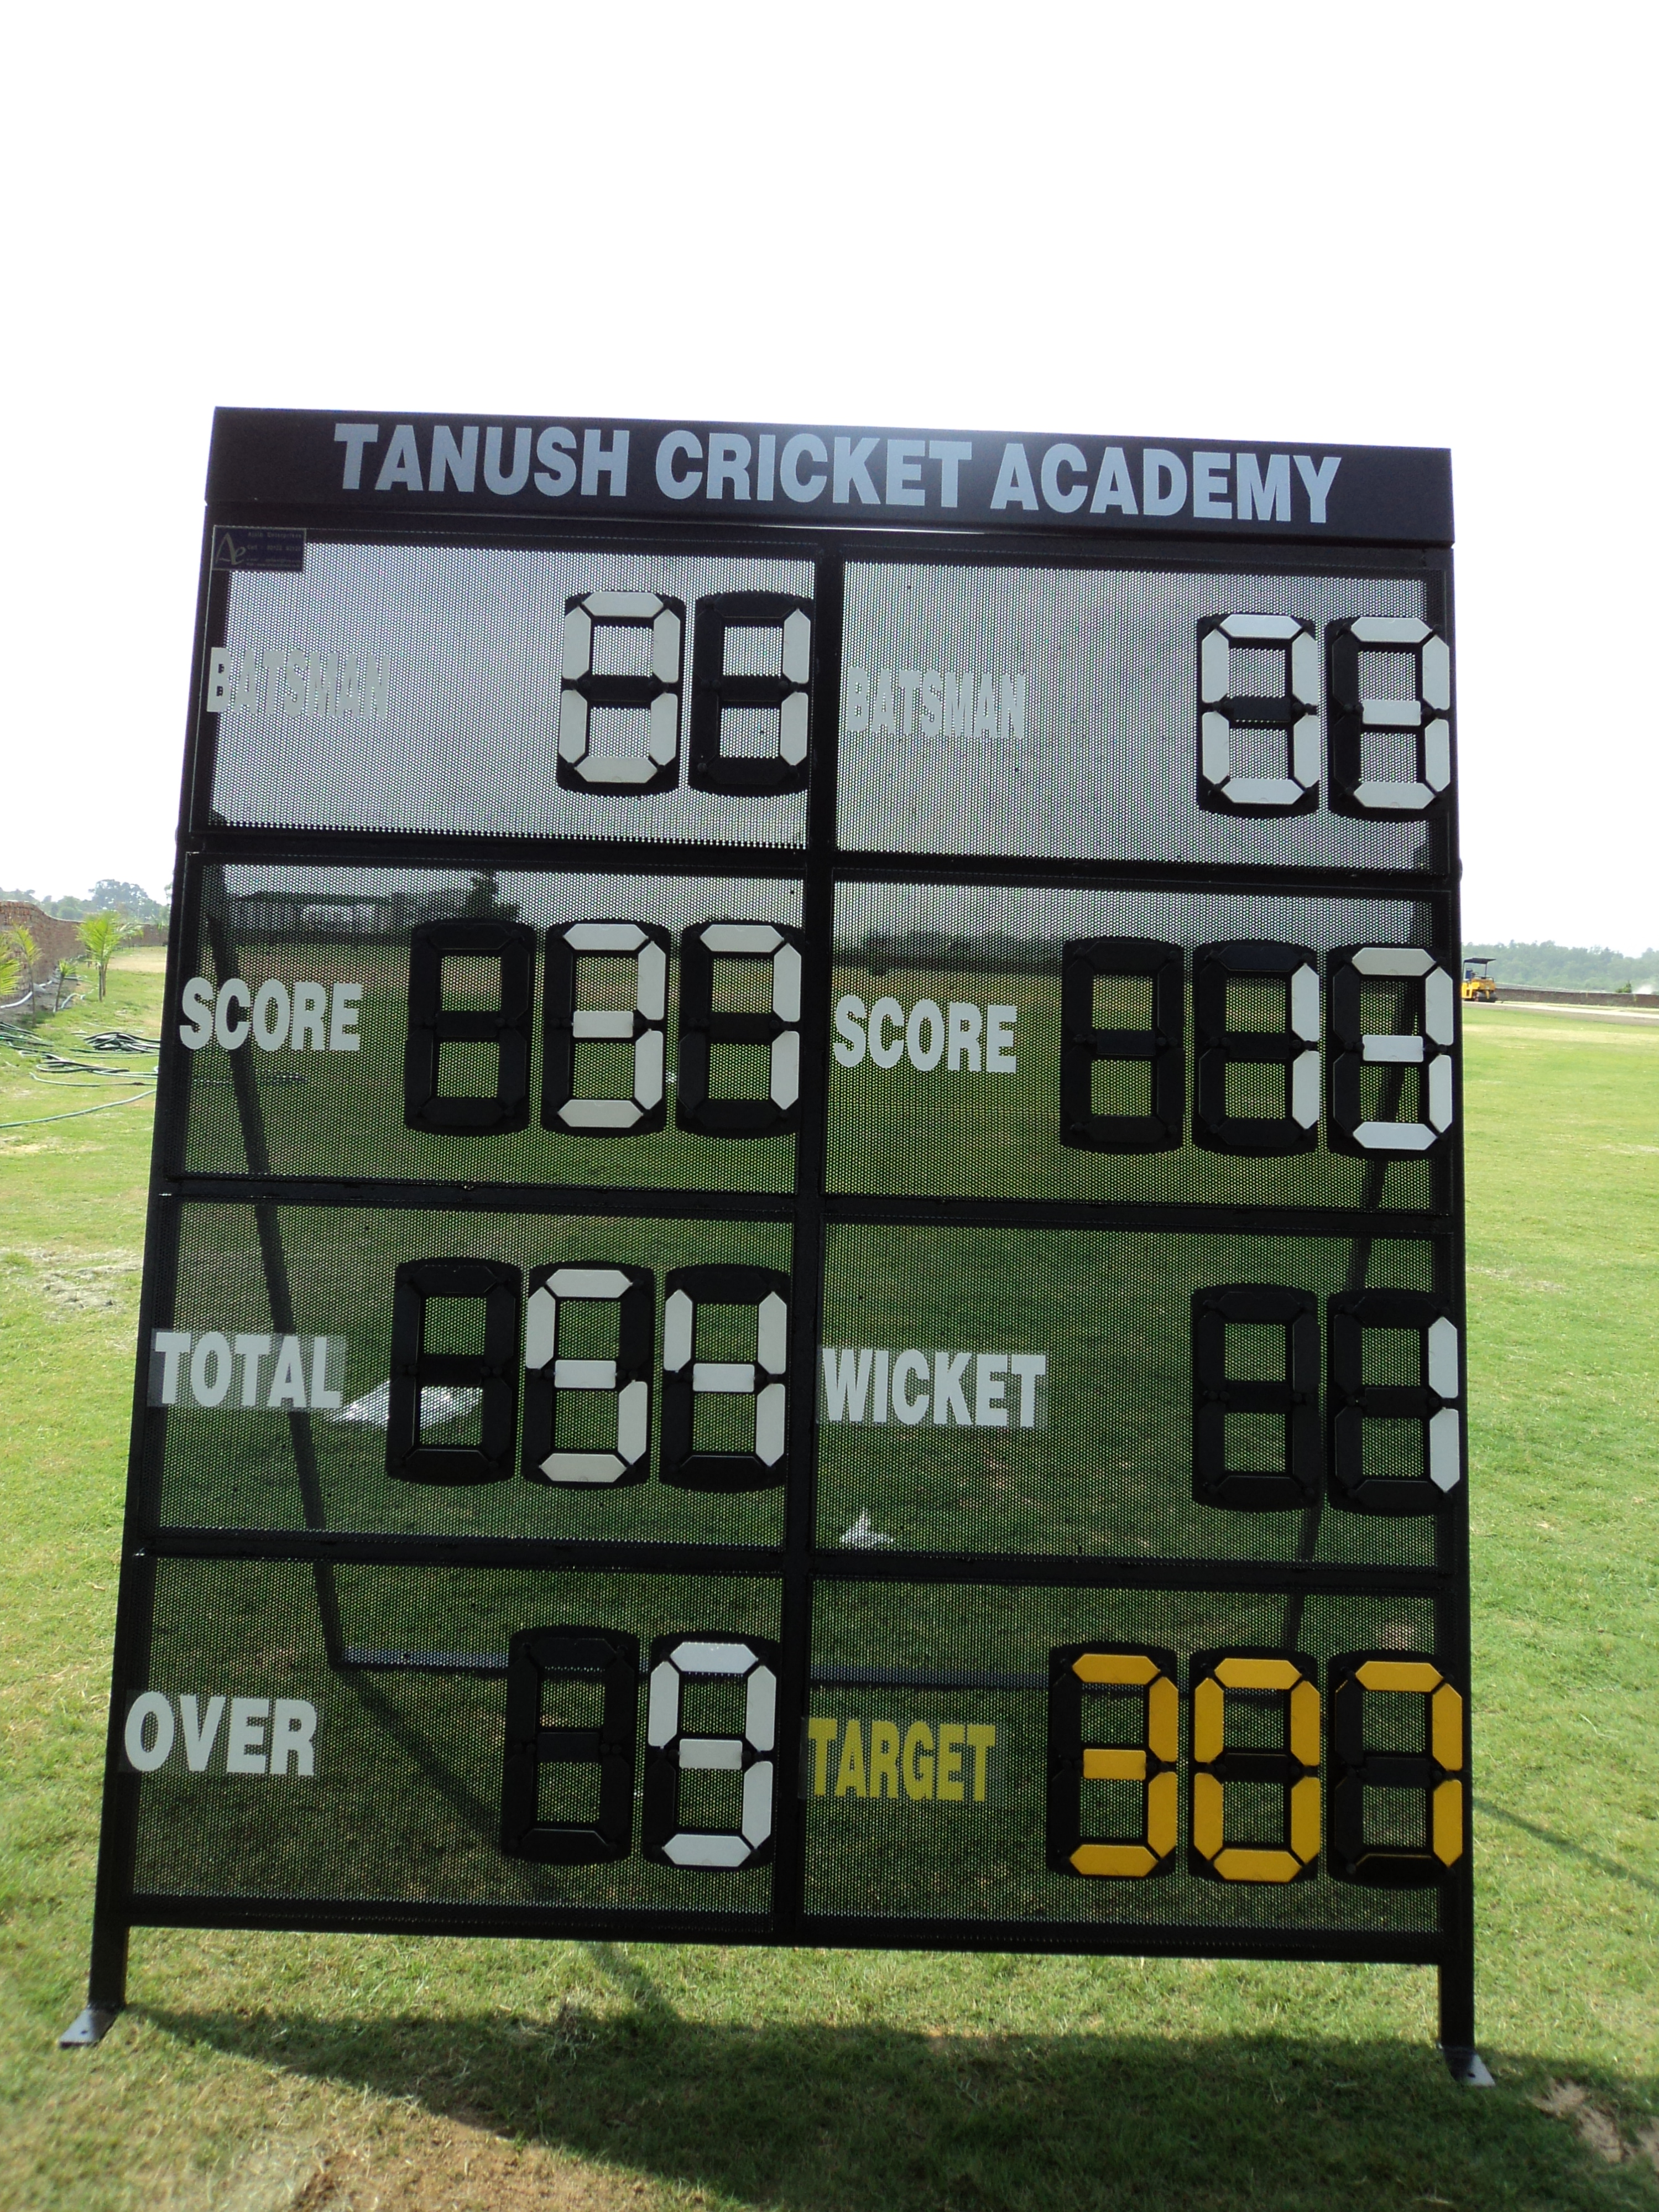 ae cricket manual score board (medium)